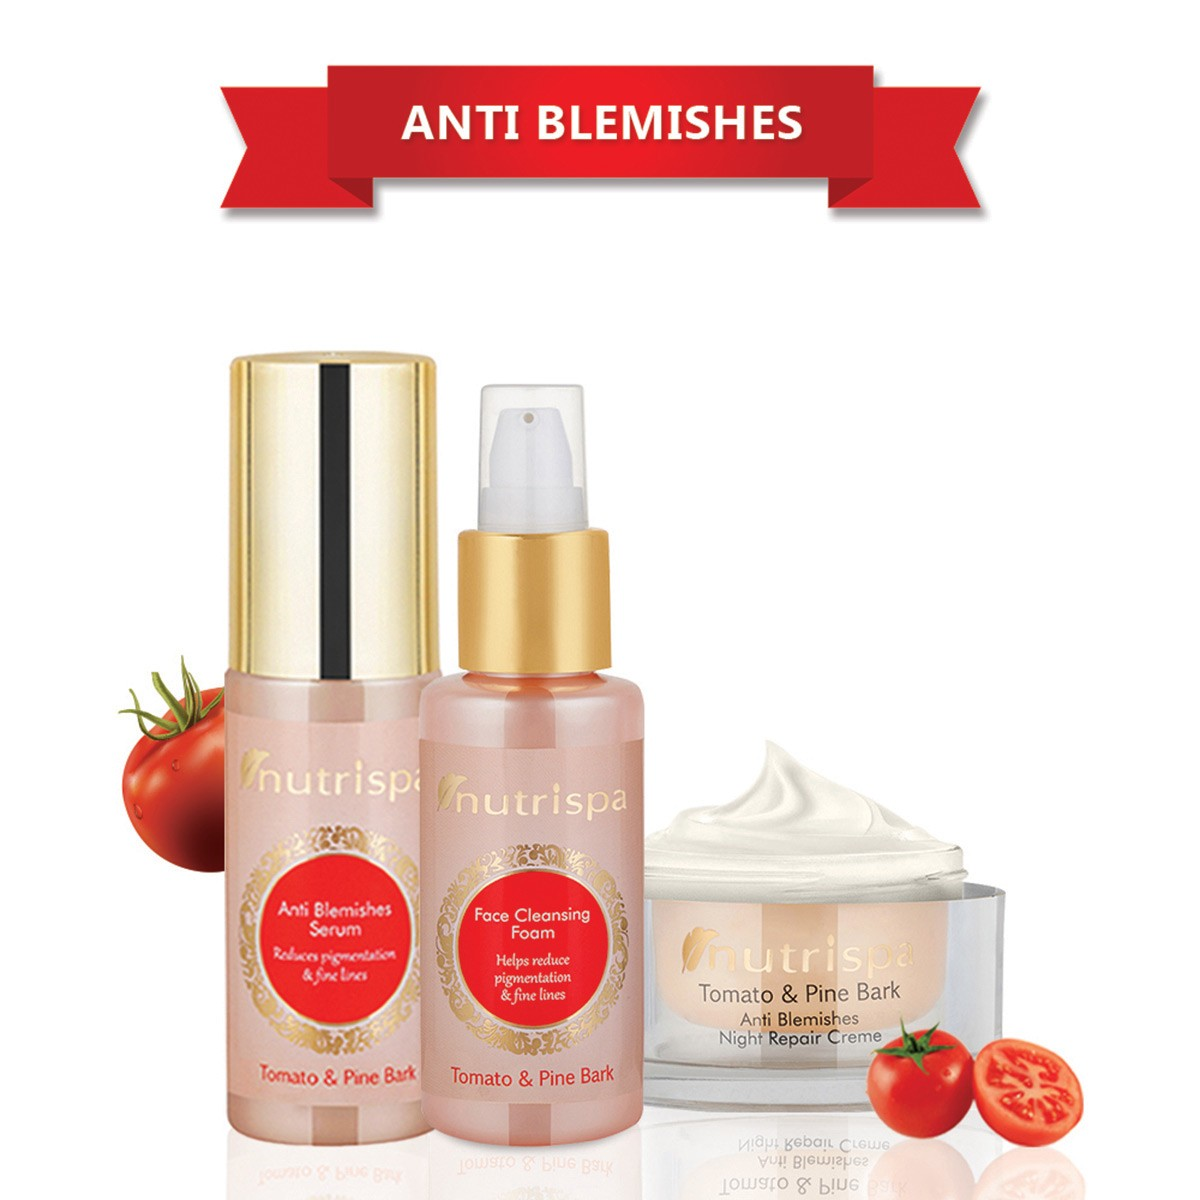 Nutrispa Tomato And Pine Bark - Anti Blemish Skin Care kit